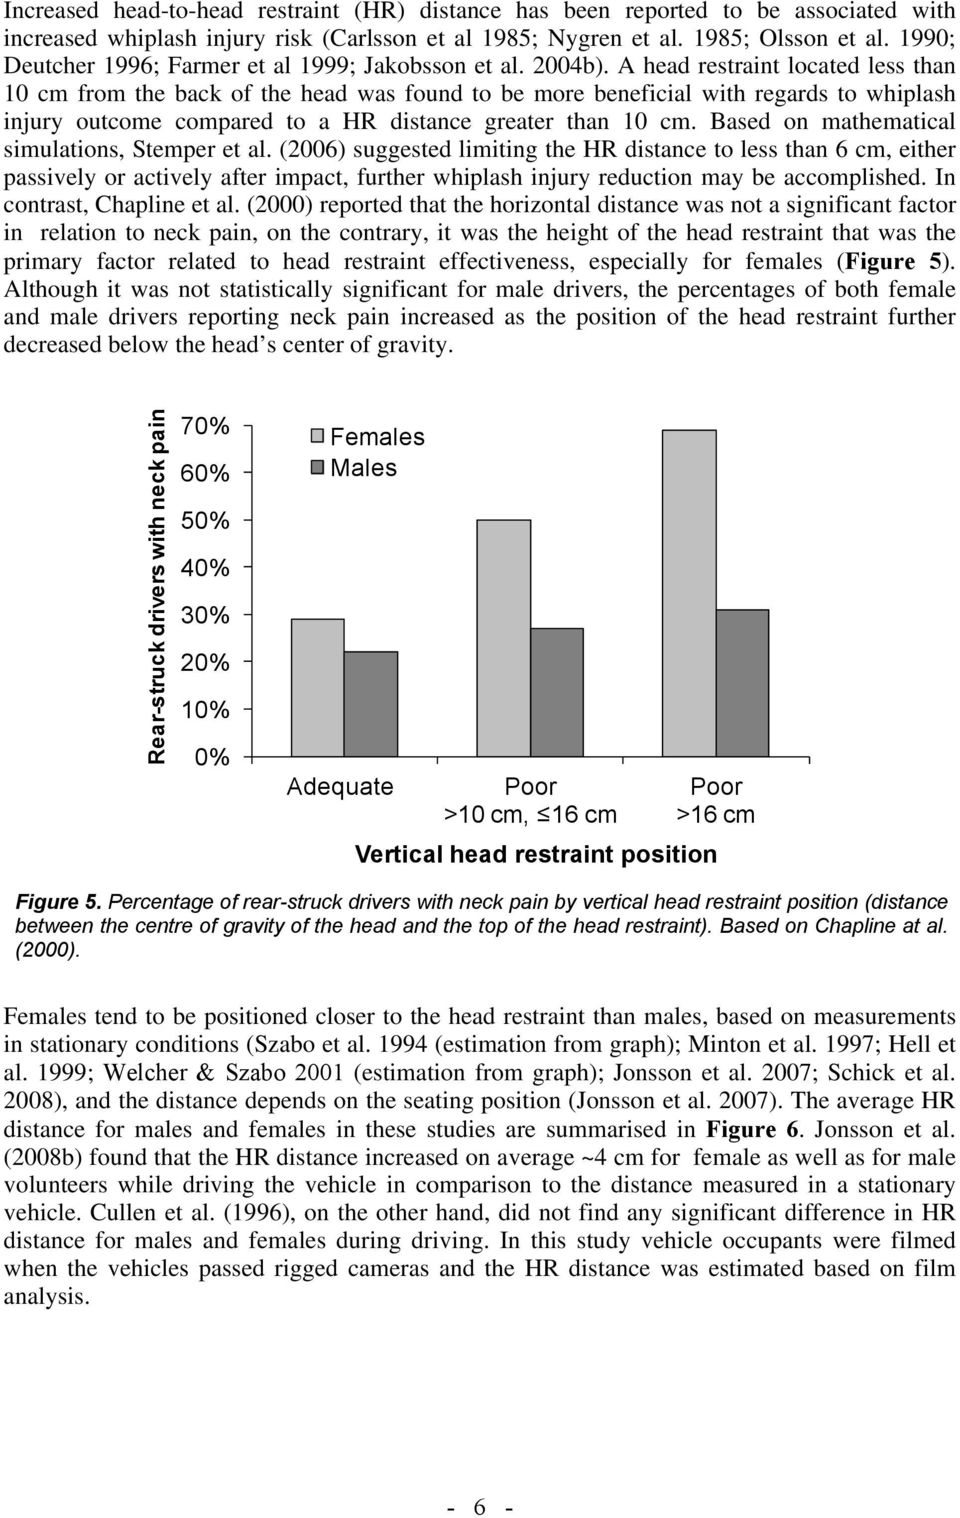 A head restraint located less than 10 cm from the back of the head was found to be more beneficial with regards to whiplash injury outcome compared to a HR distance greater than 10 cm.